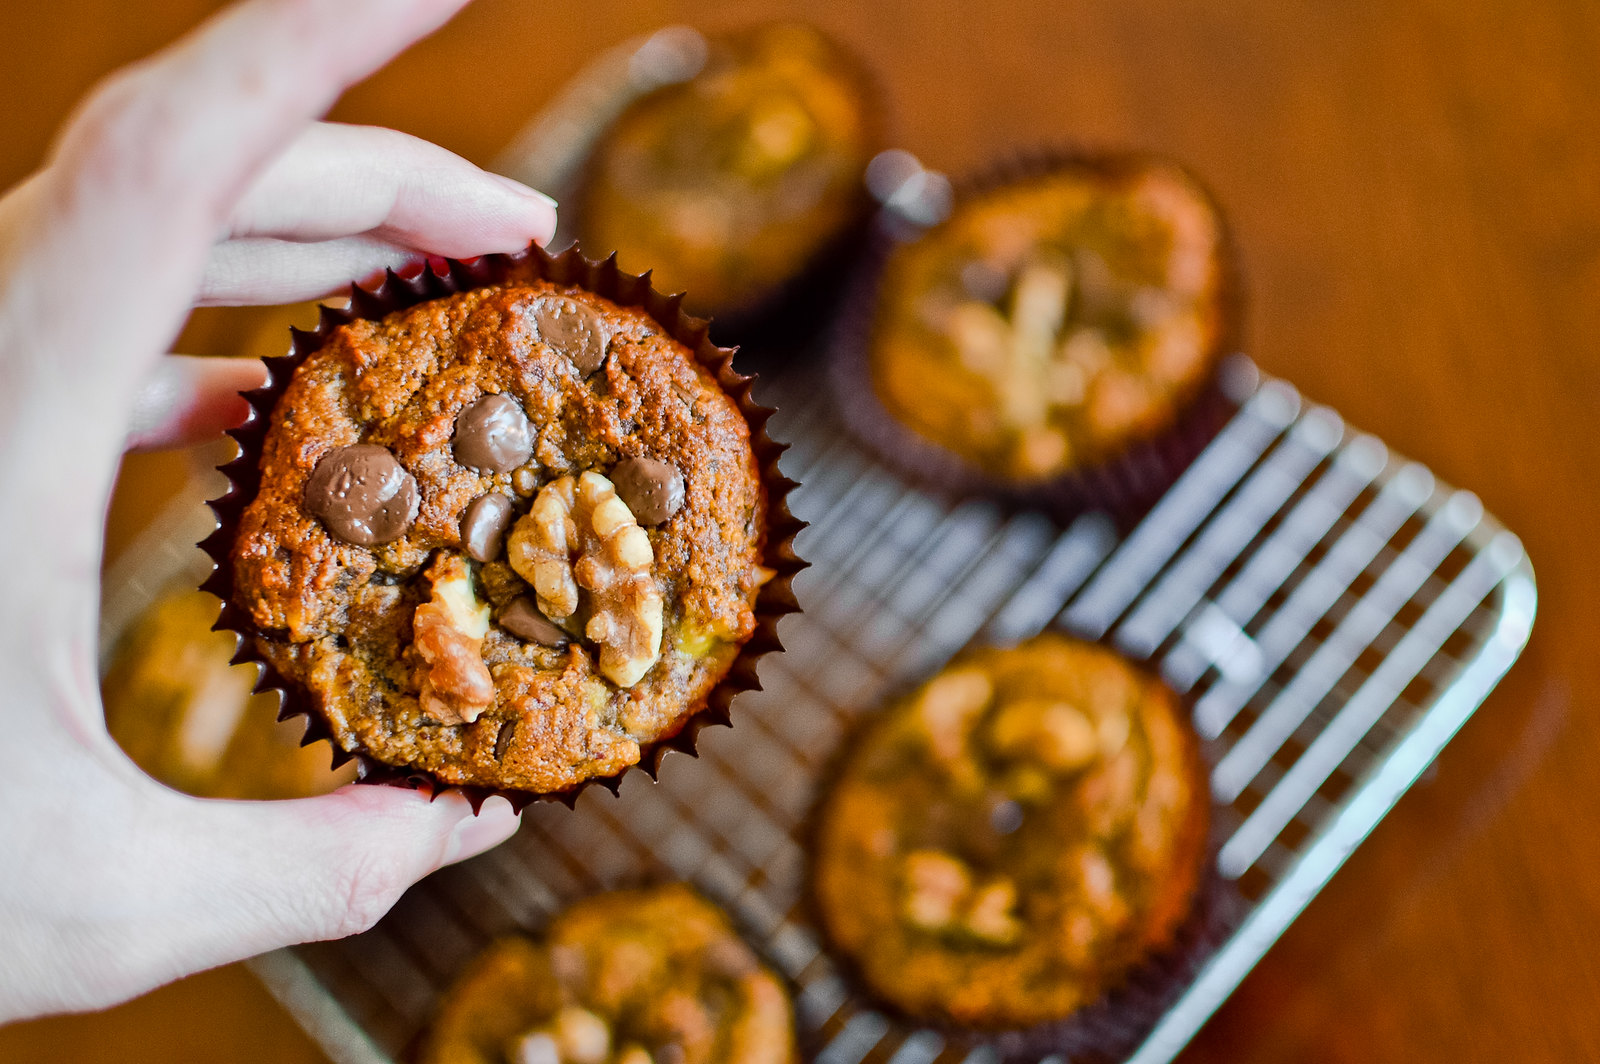 Chocolate Chip Banana Walnut Muffins